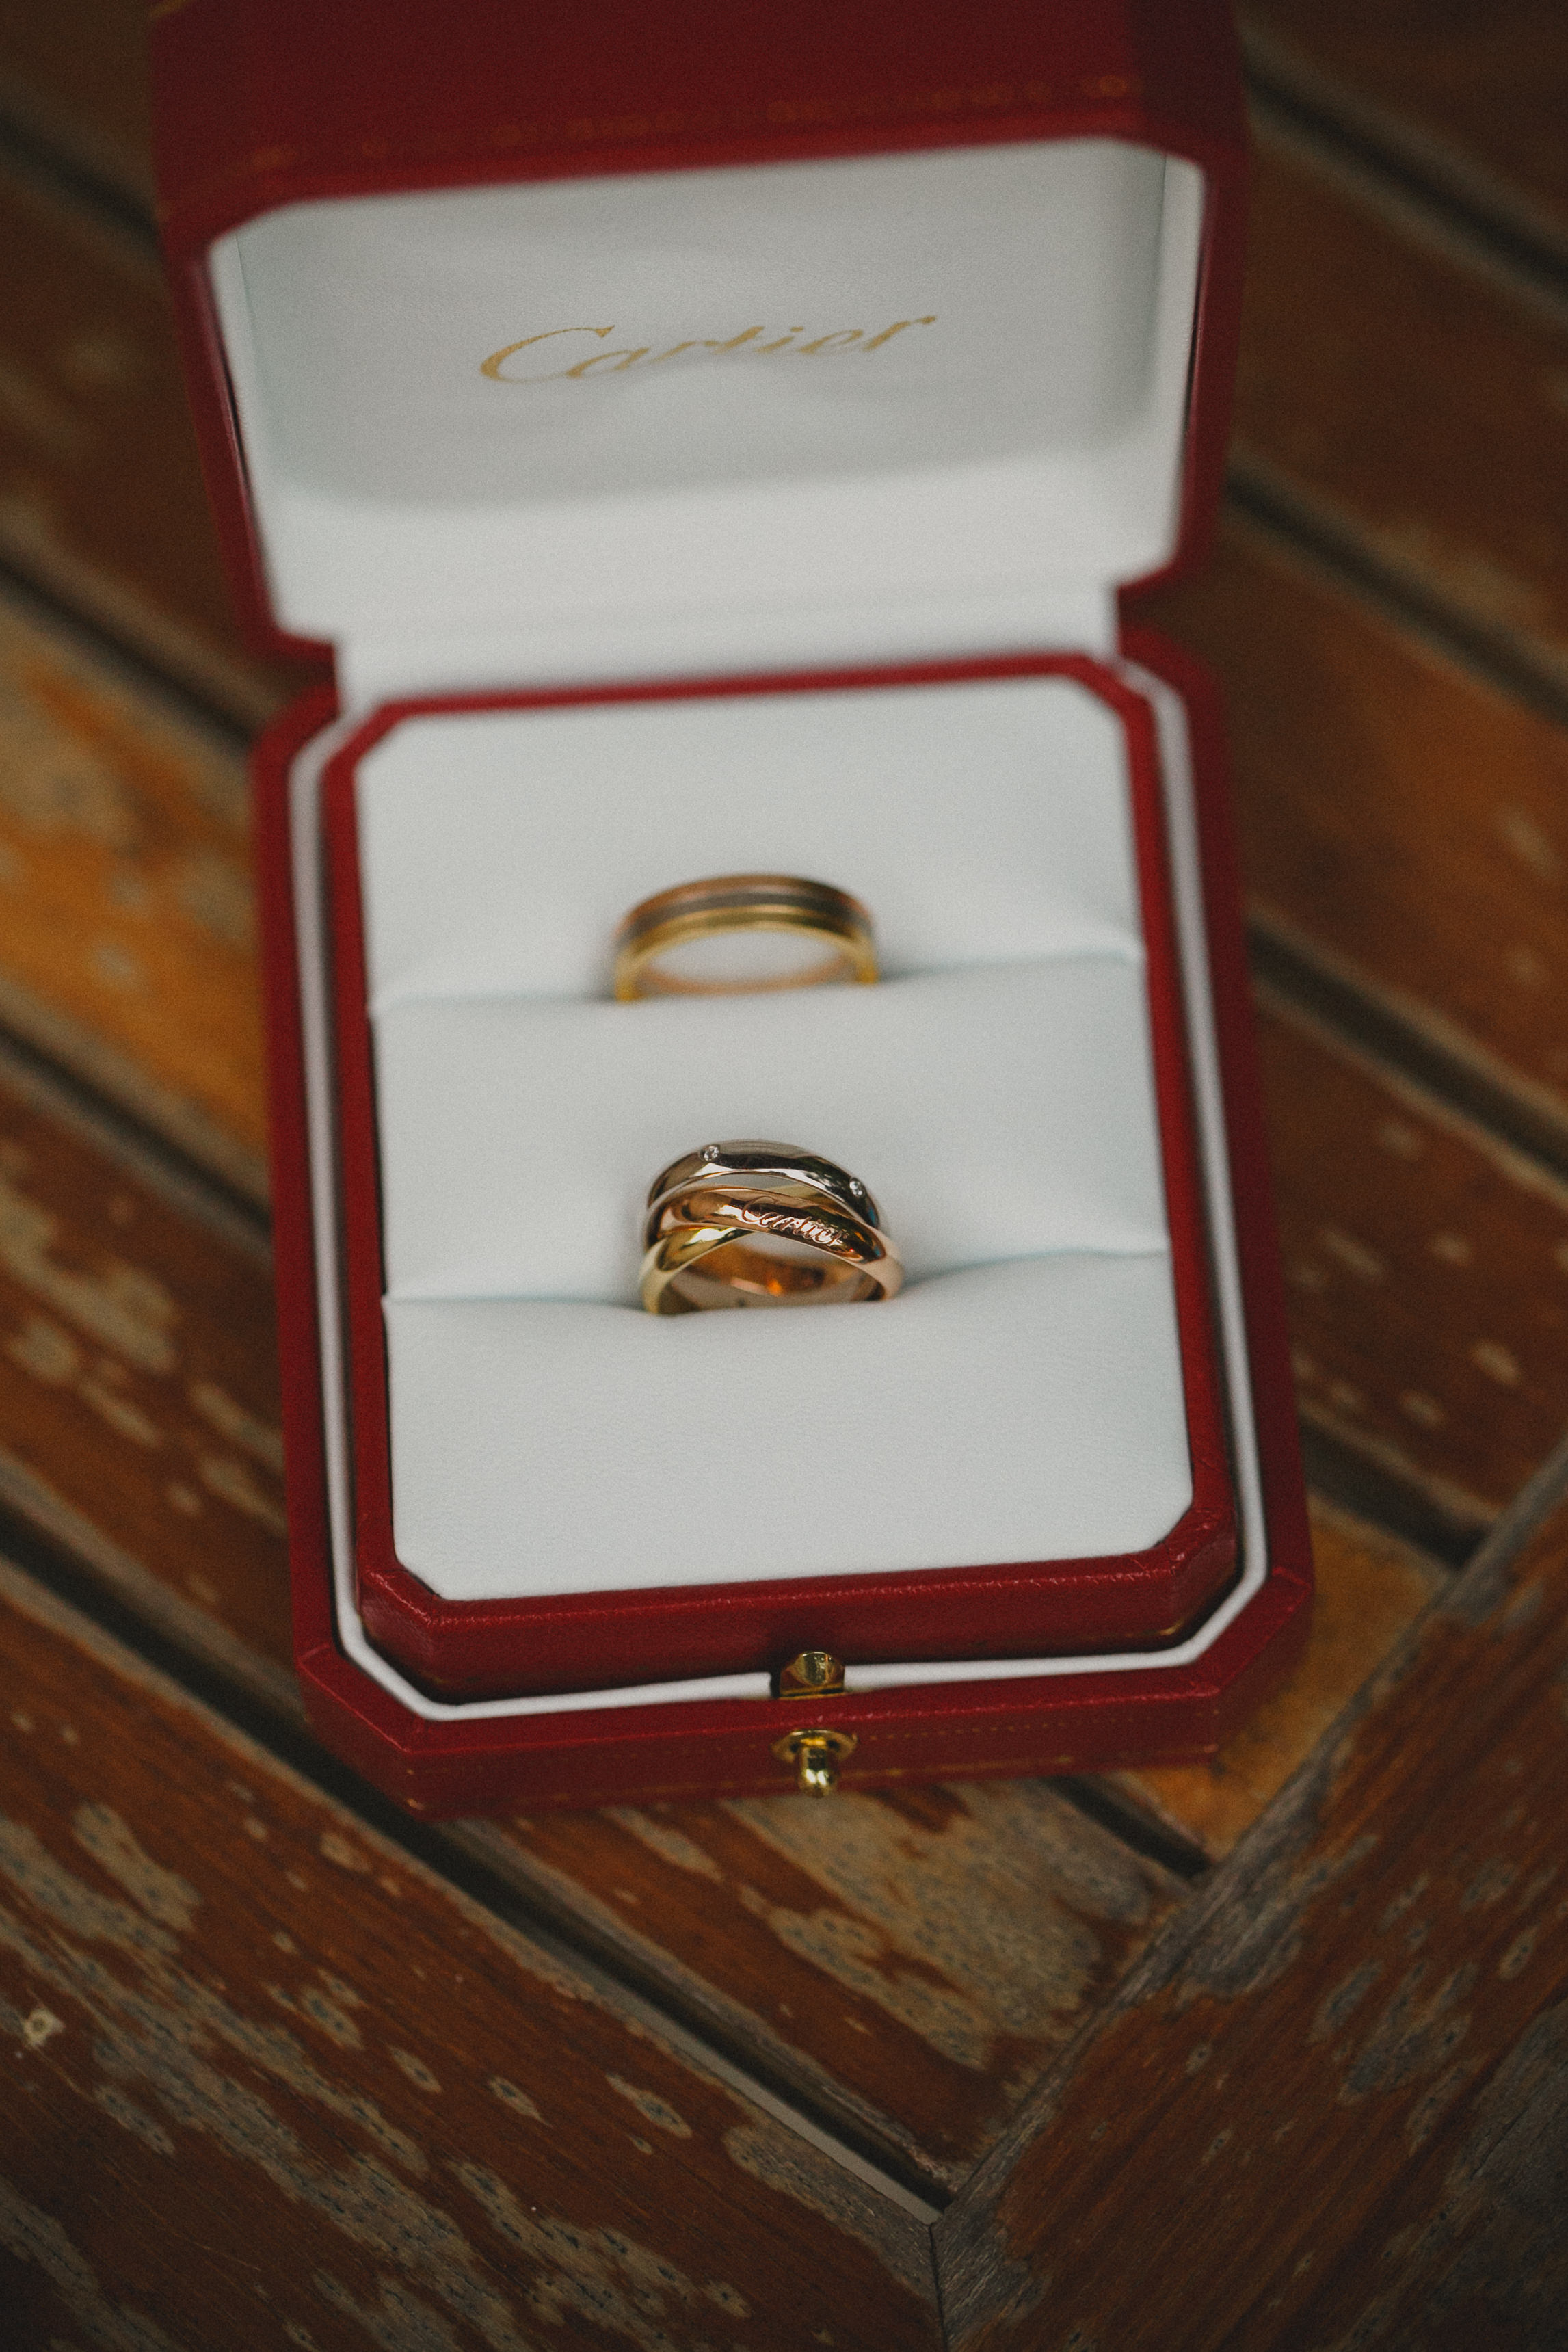 wedding bands  trinity de cartier  three symbolic gold colors of love: pink for love, yellow for fidelity and white for friendship